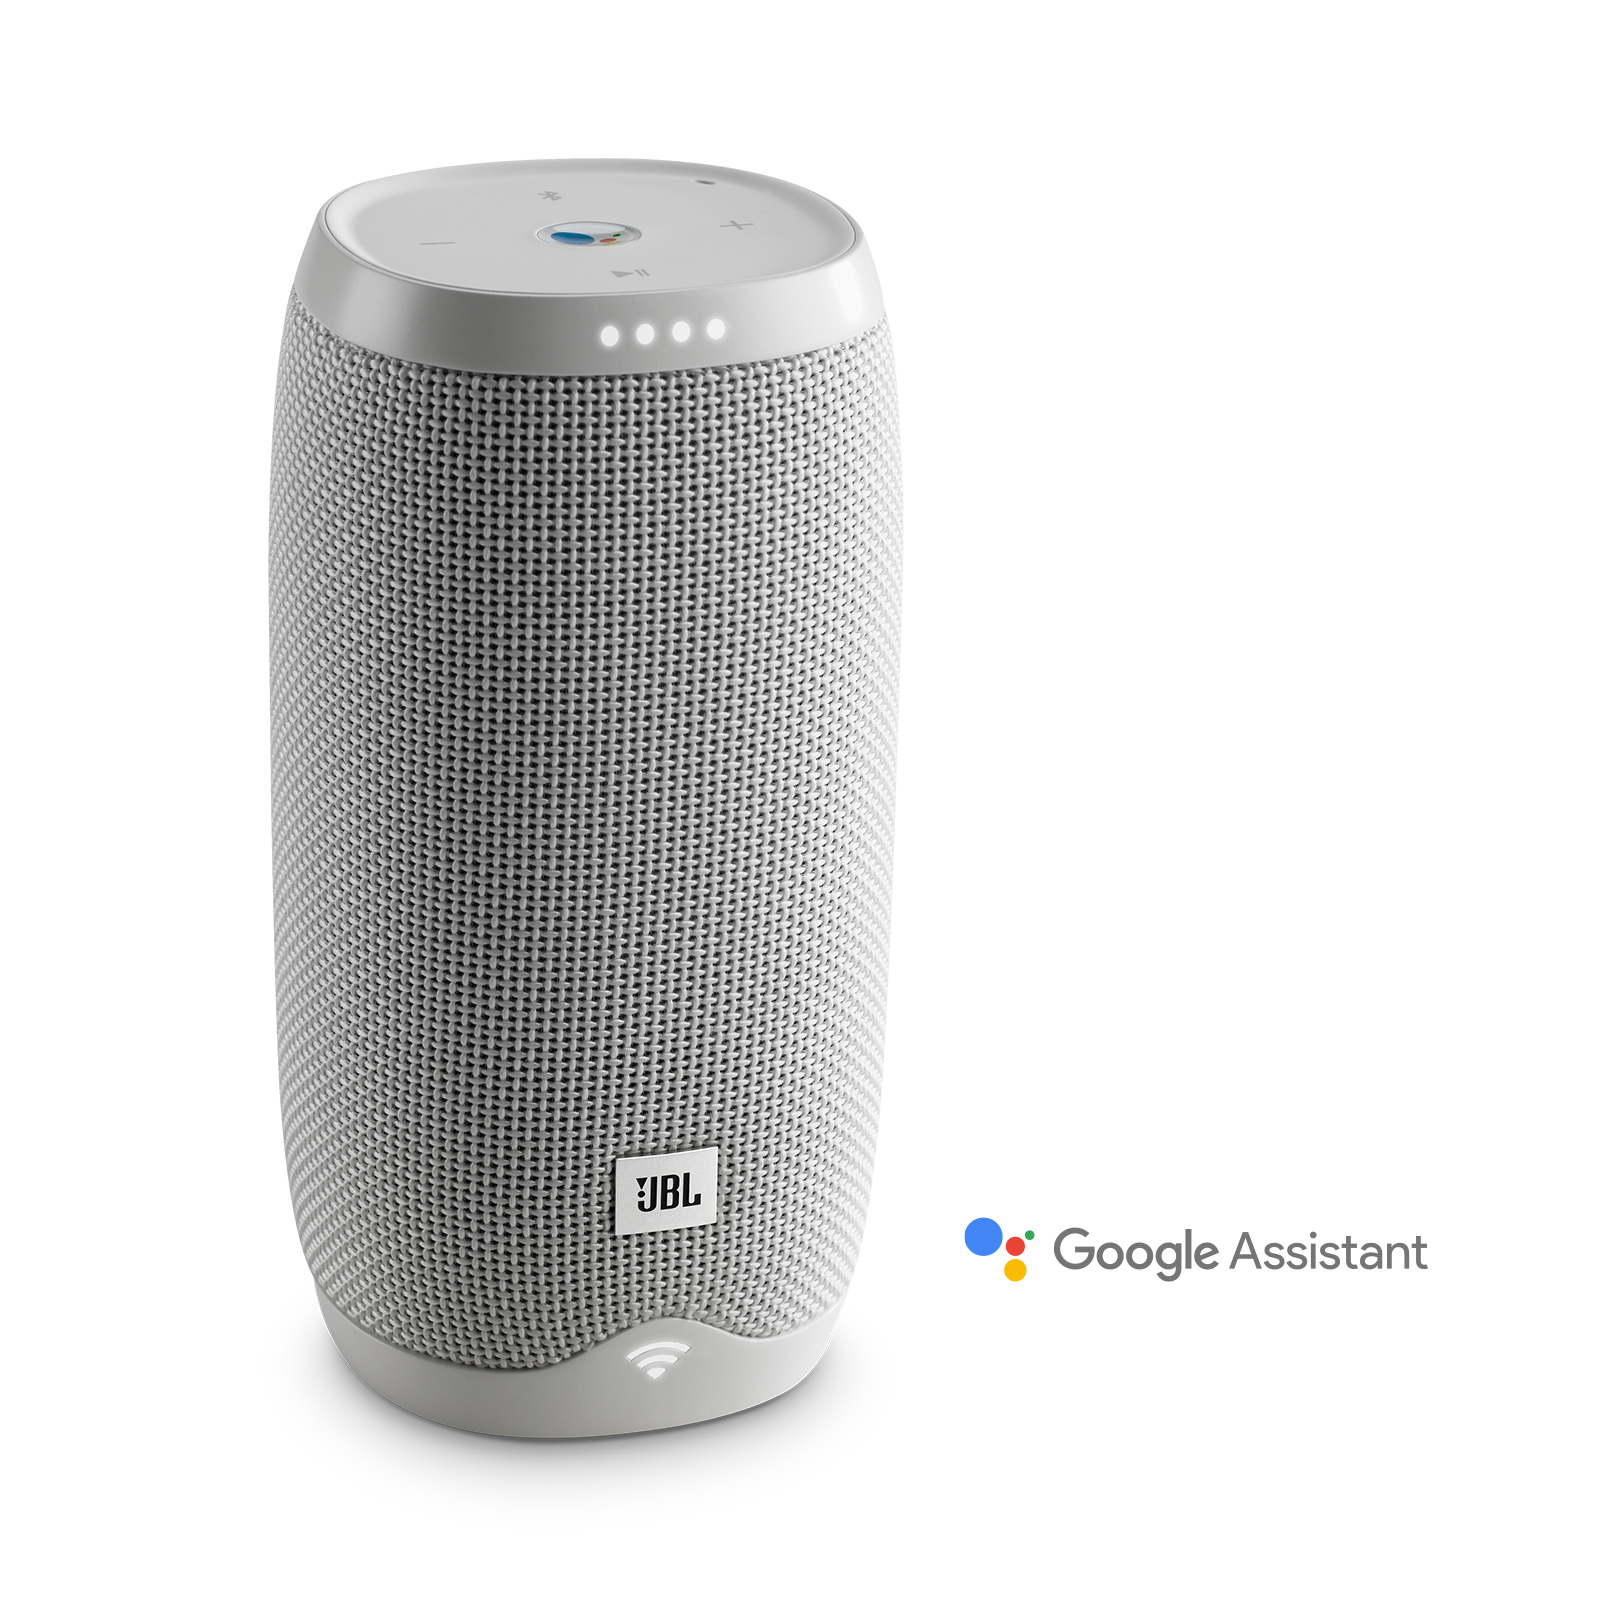 JBL Link 10 - White - Voice-activated portable speaker - Hero